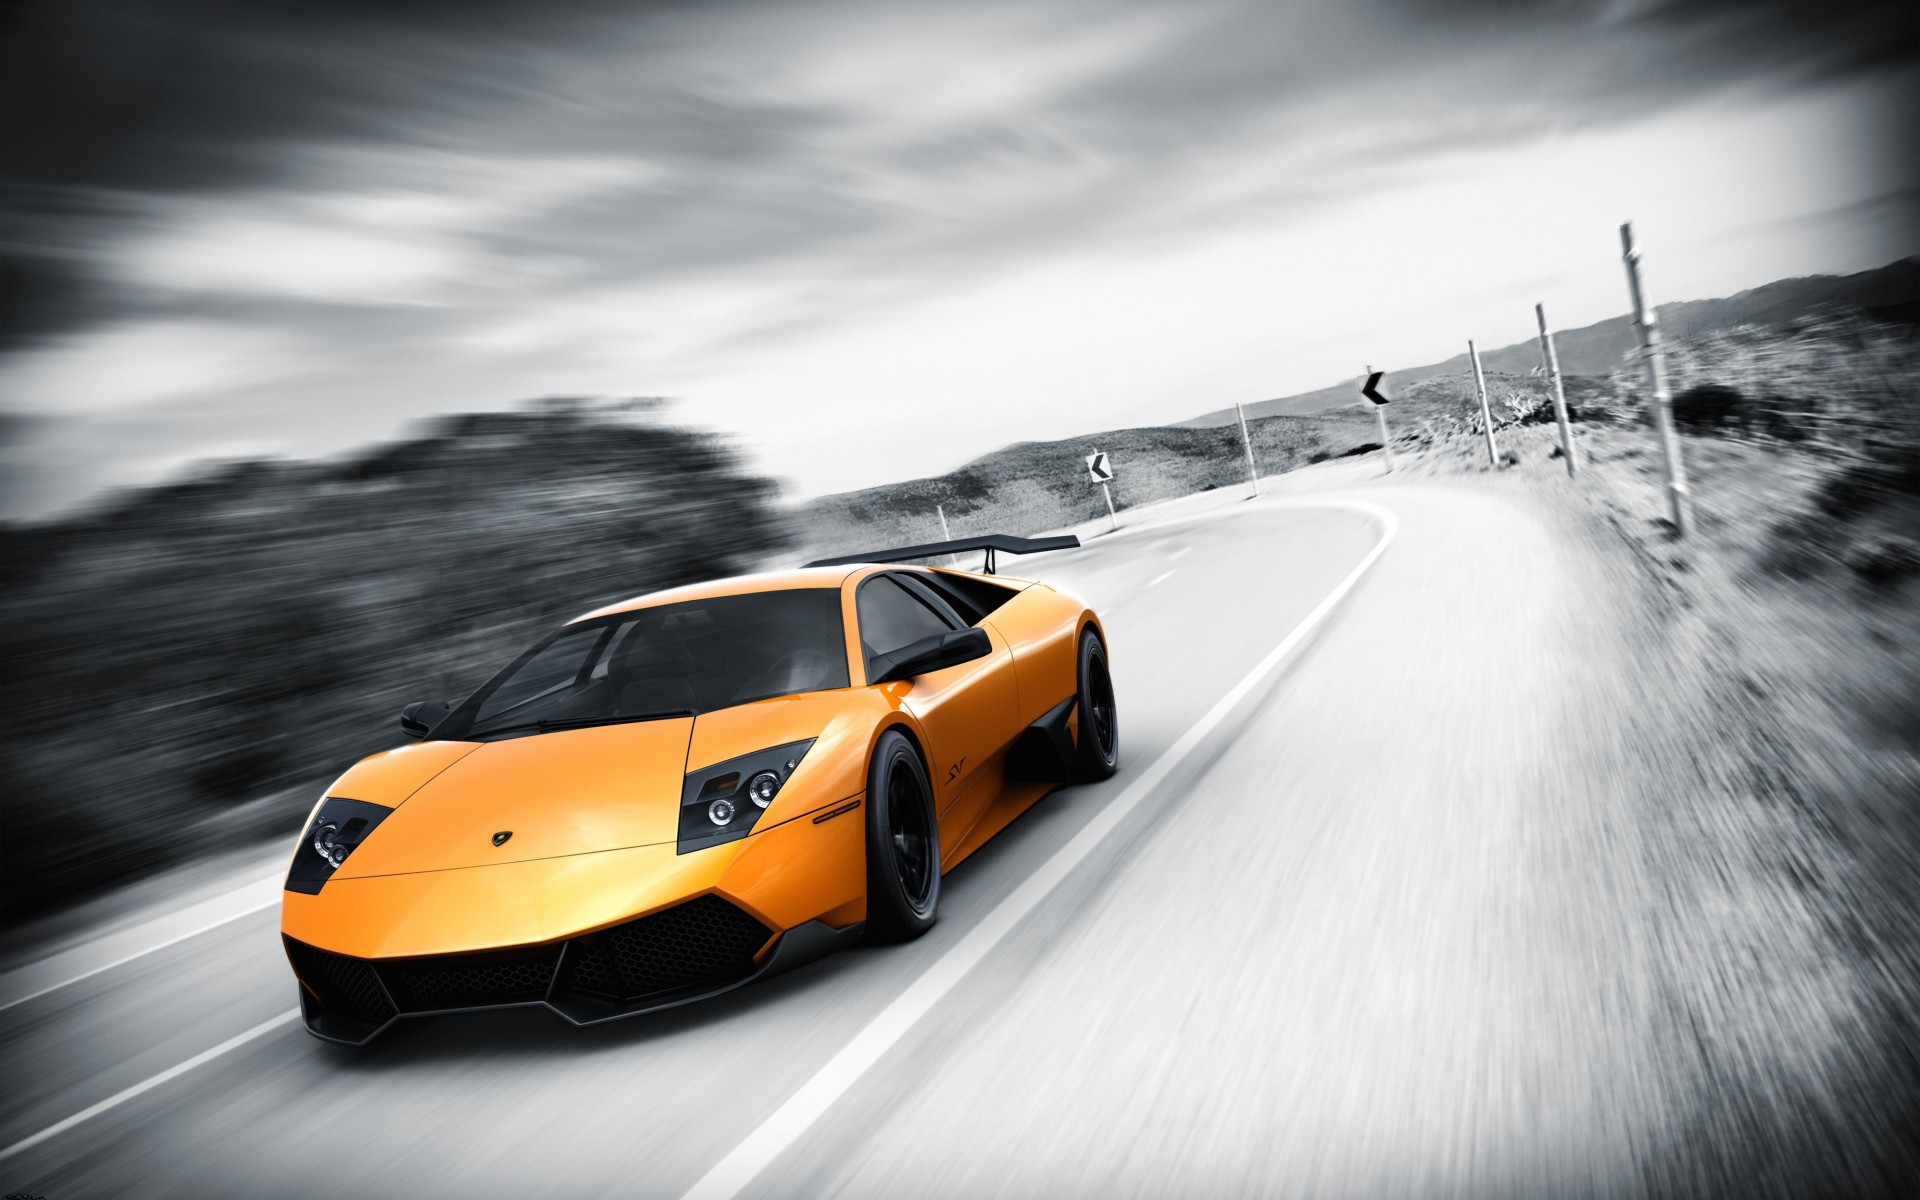 Lamborghini Murcielago LP670 Wallpaper for Desktop 1920x1200